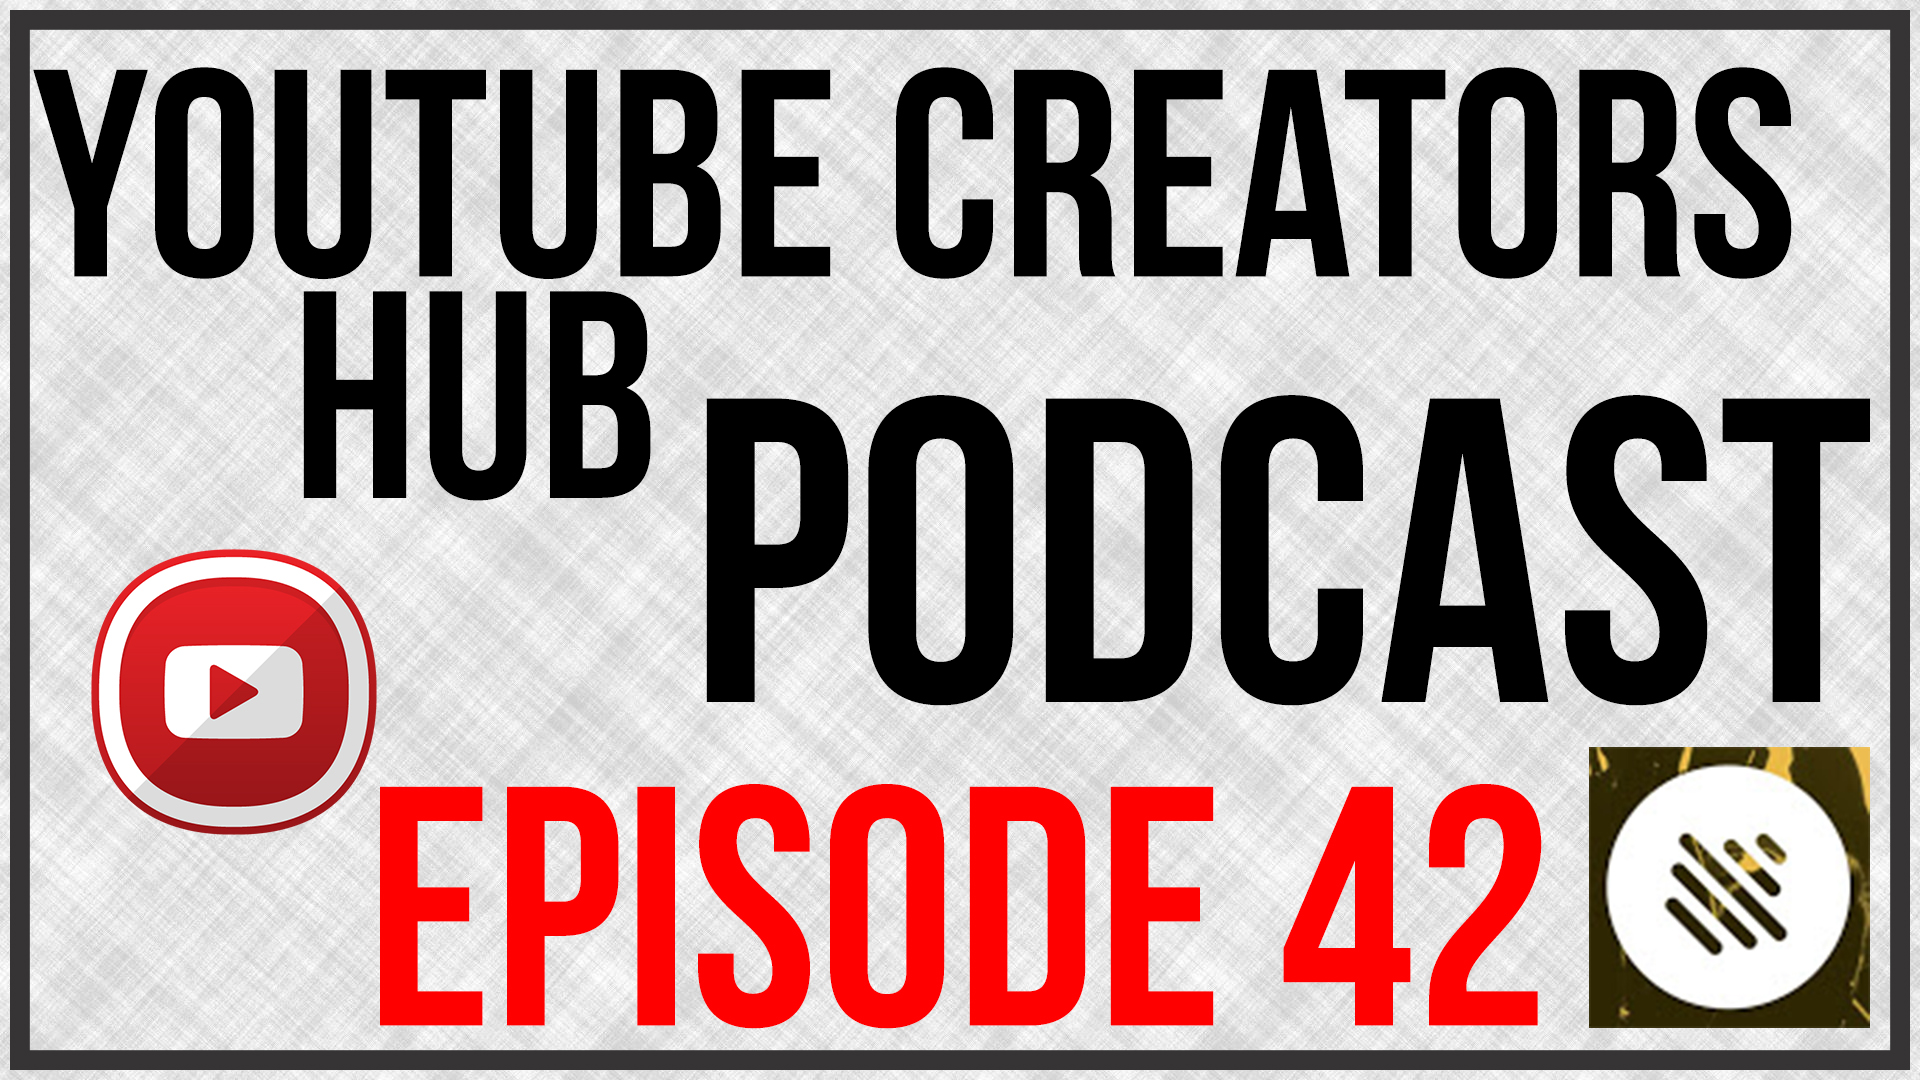 YouTube Creators Hub Podcast Episode 42